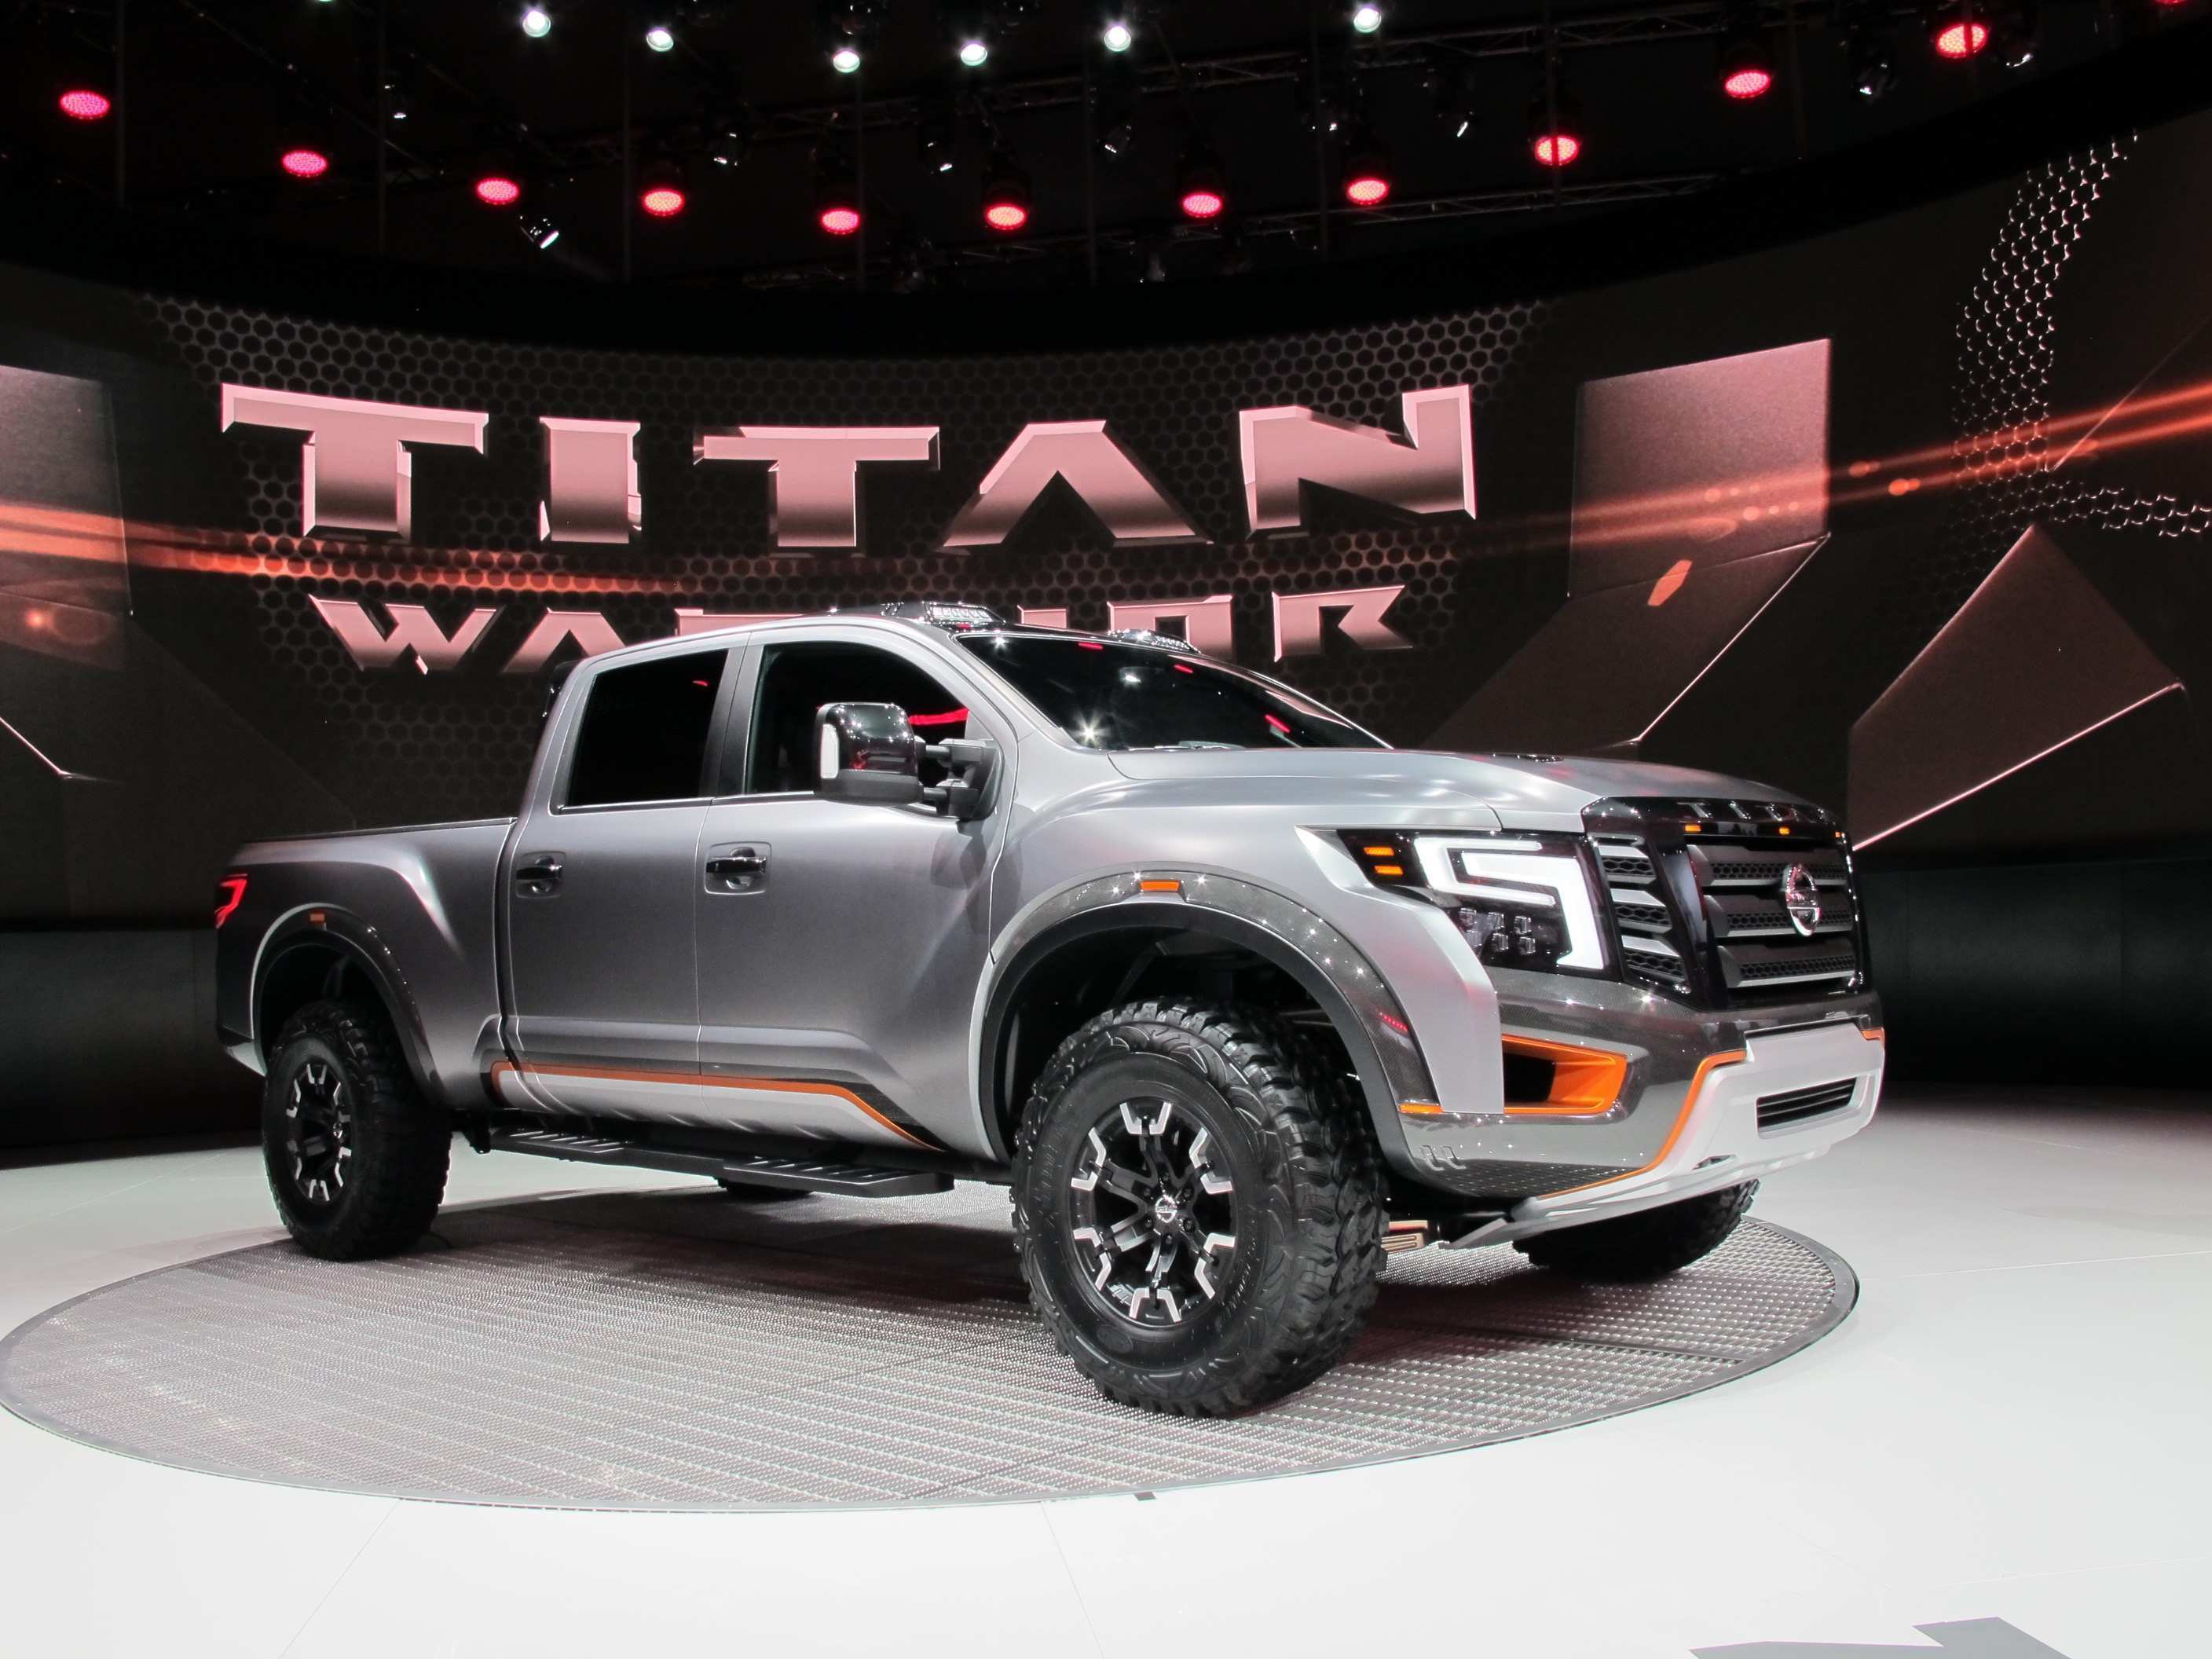 52 All New 2020 Nissan Titan New Concept Price by 2020 Nissan Titan New Concept